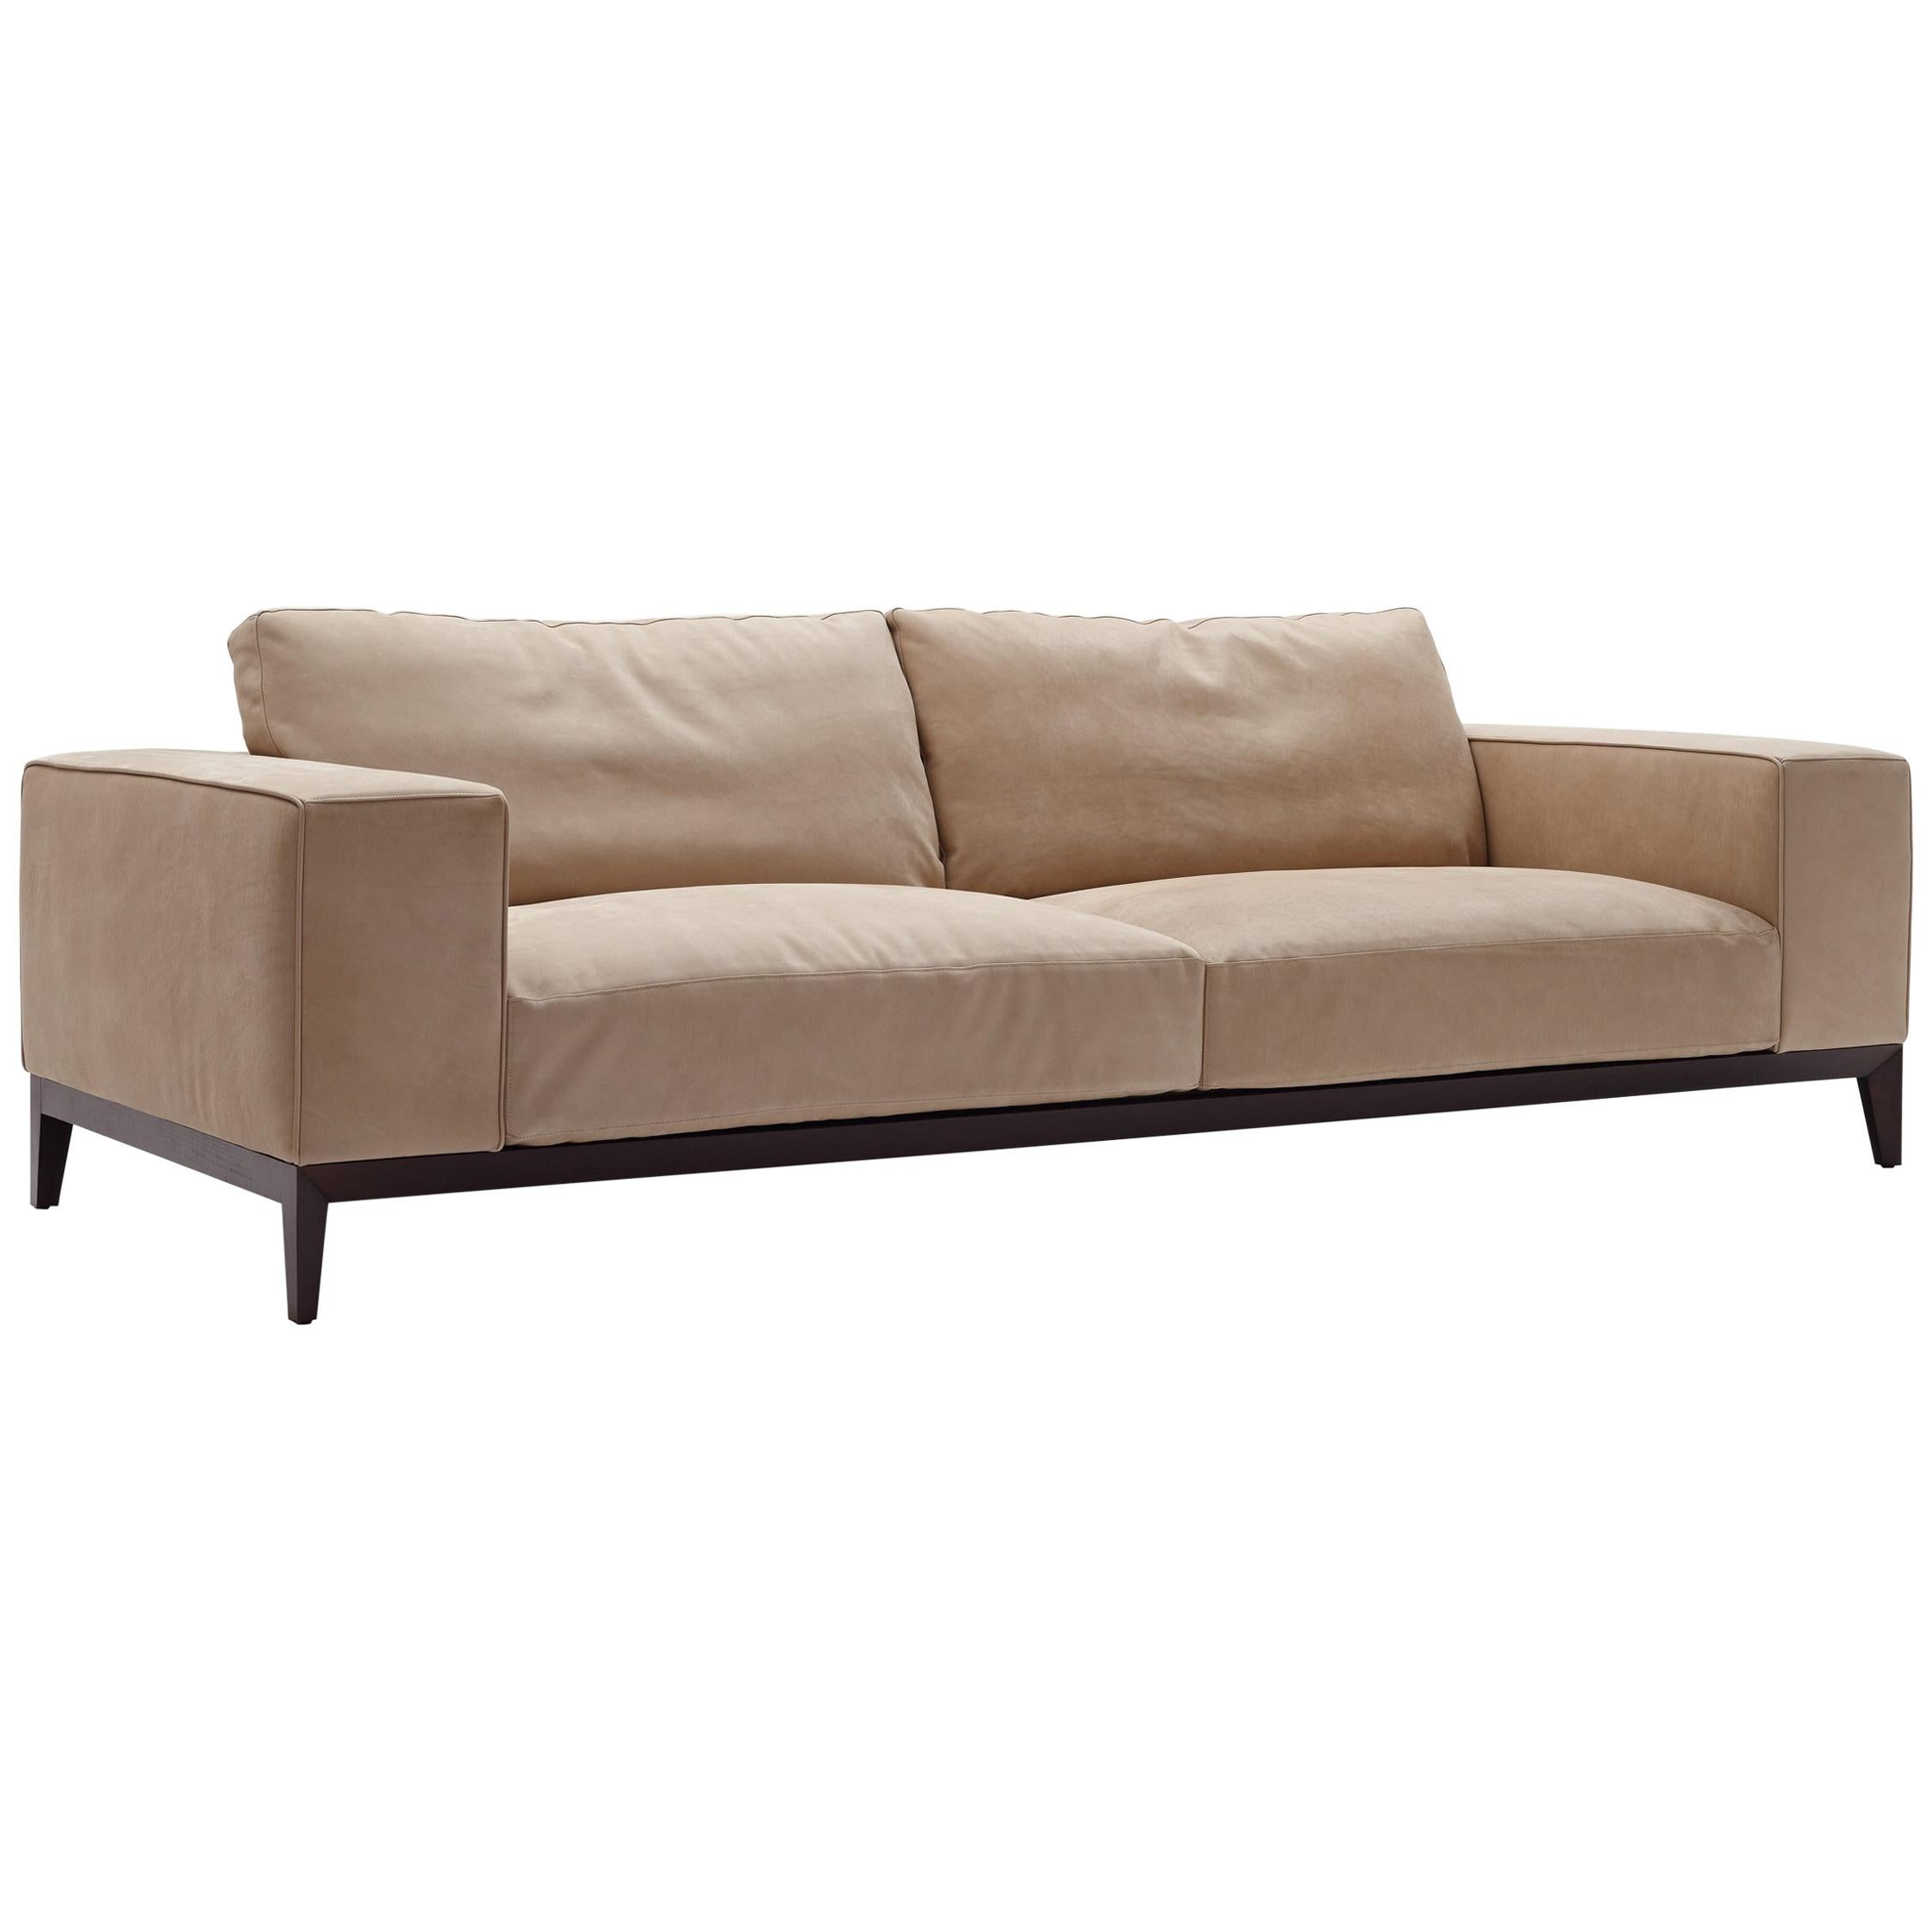 Nube Italia Herry Sofa in Tan Leather by Carlo Colombo